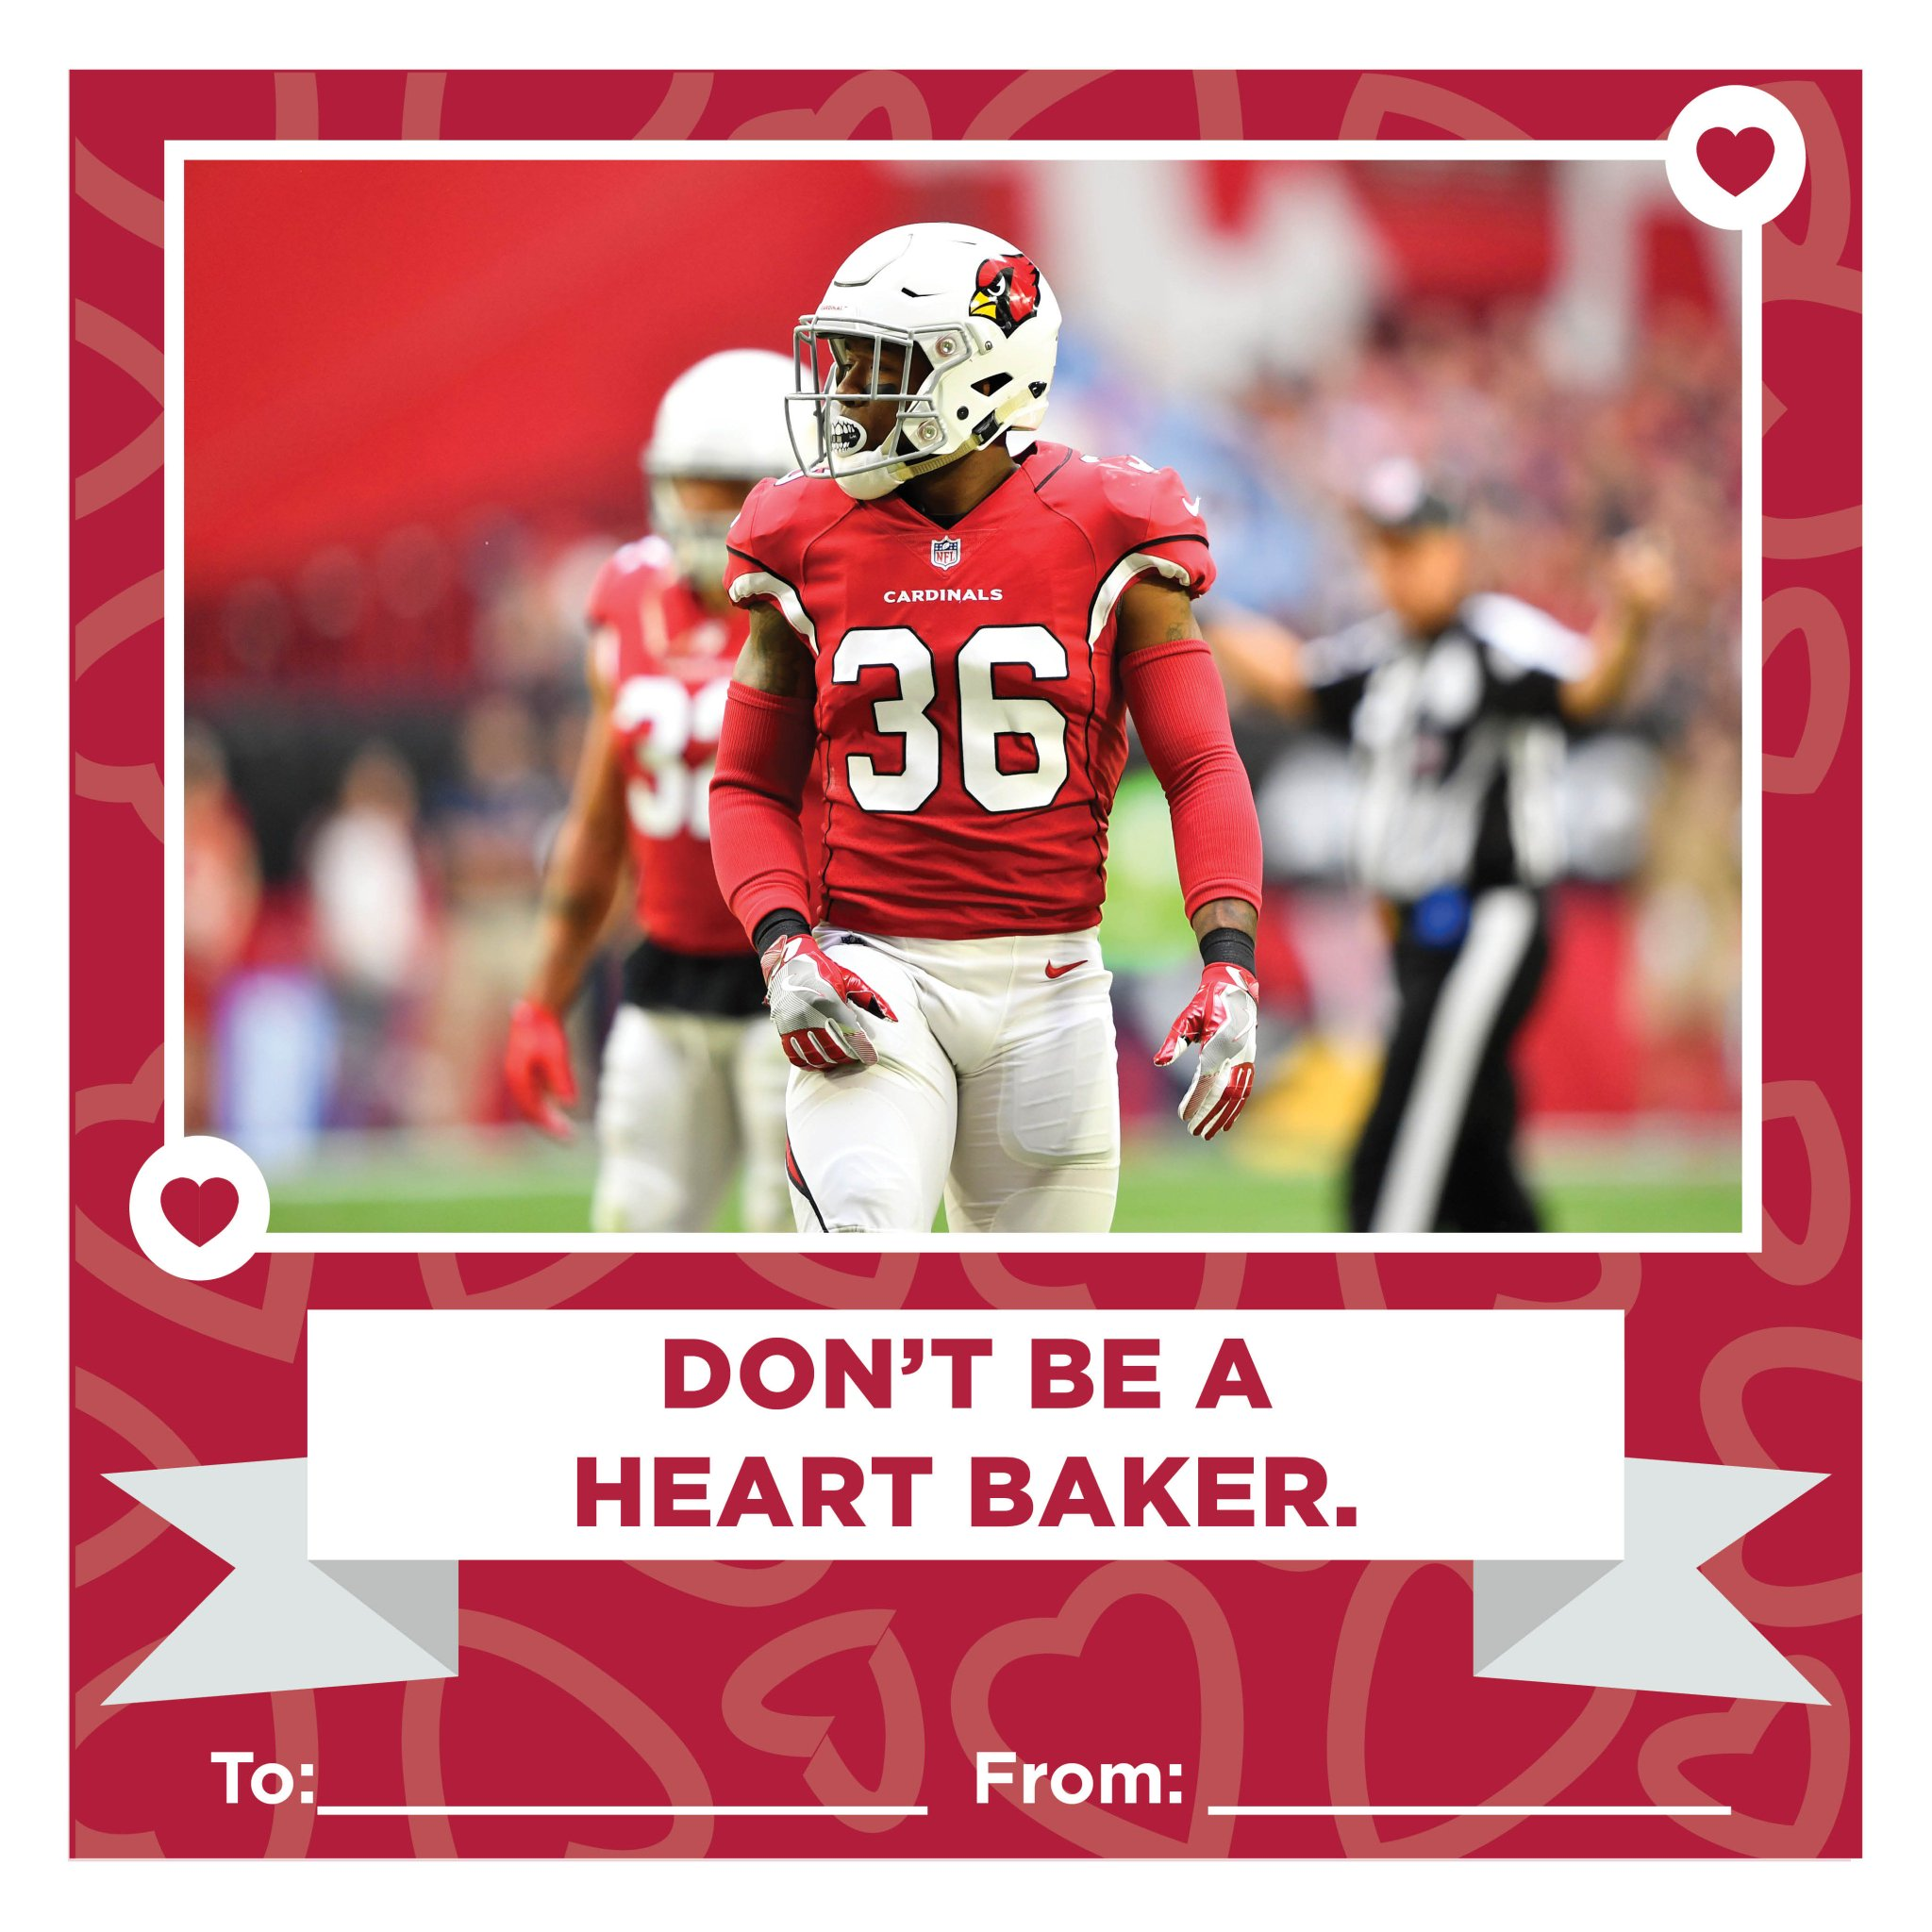 Even if this is your first year with your Valentine, you'll look like an All-Pro with this card. https://t.co/kb2oZcH0PZ